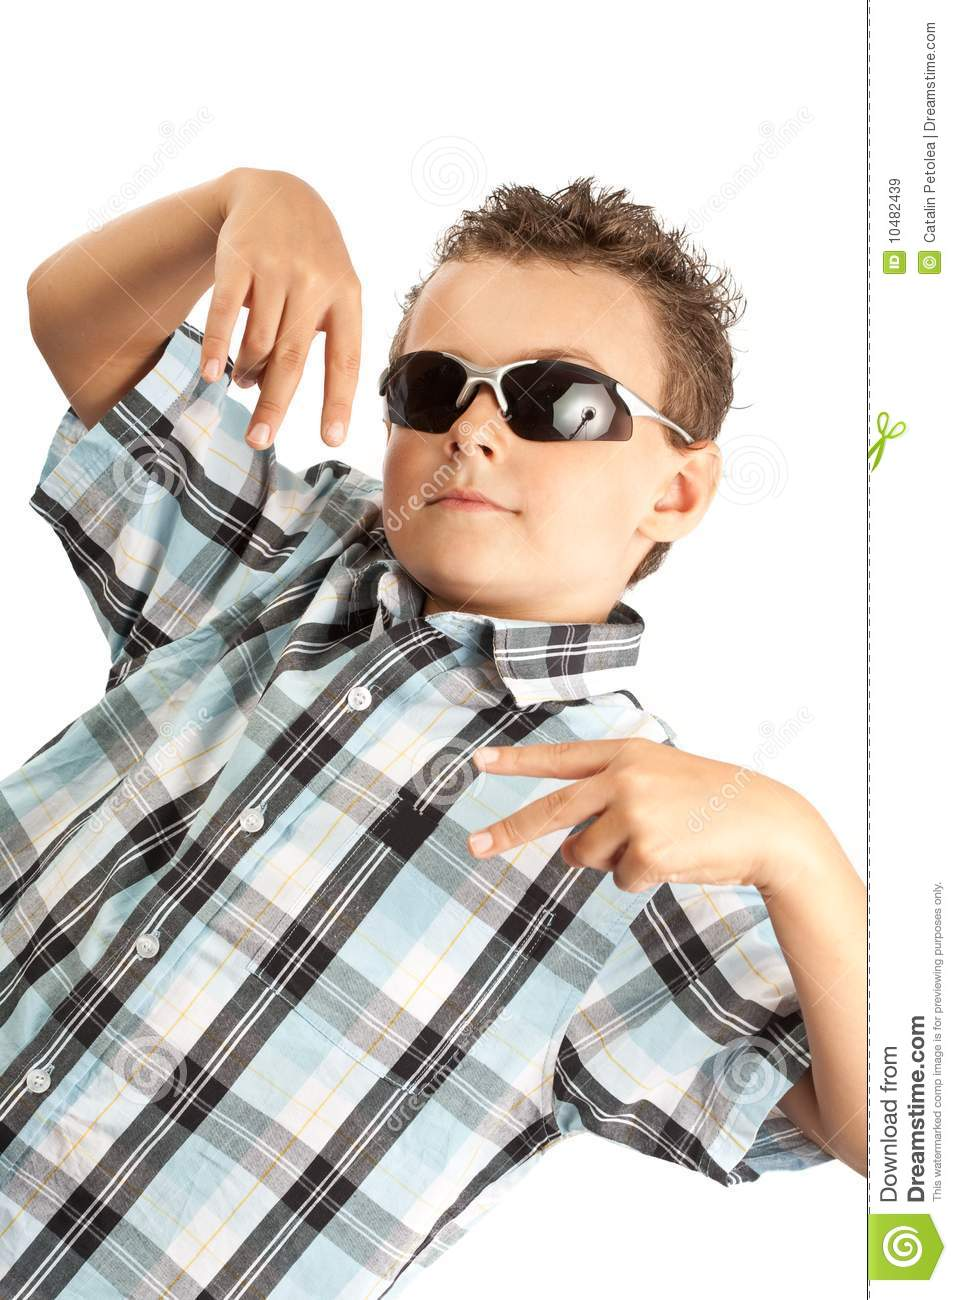 Http Www Dreamstime Com Royalty Free Stock Images Cool Kid Image10482439